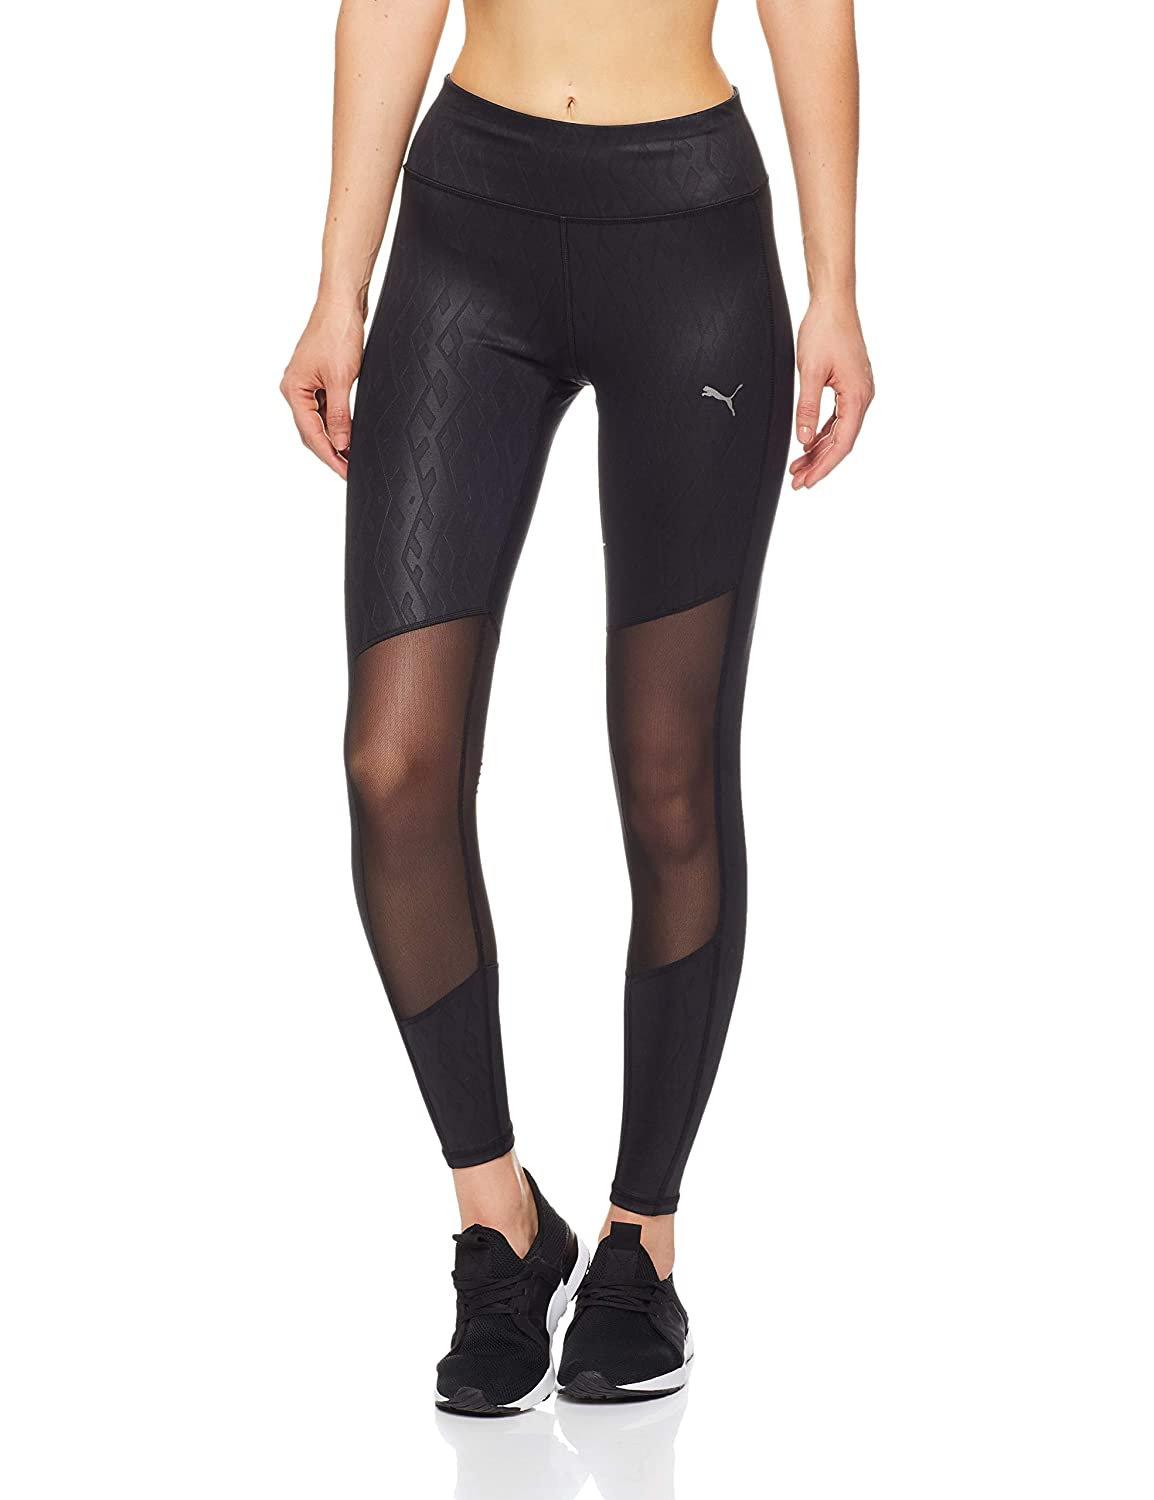 Puma Always On Graphic 7/8 Tight Pantalones, Mujer, Negro (Black/Emboss), S